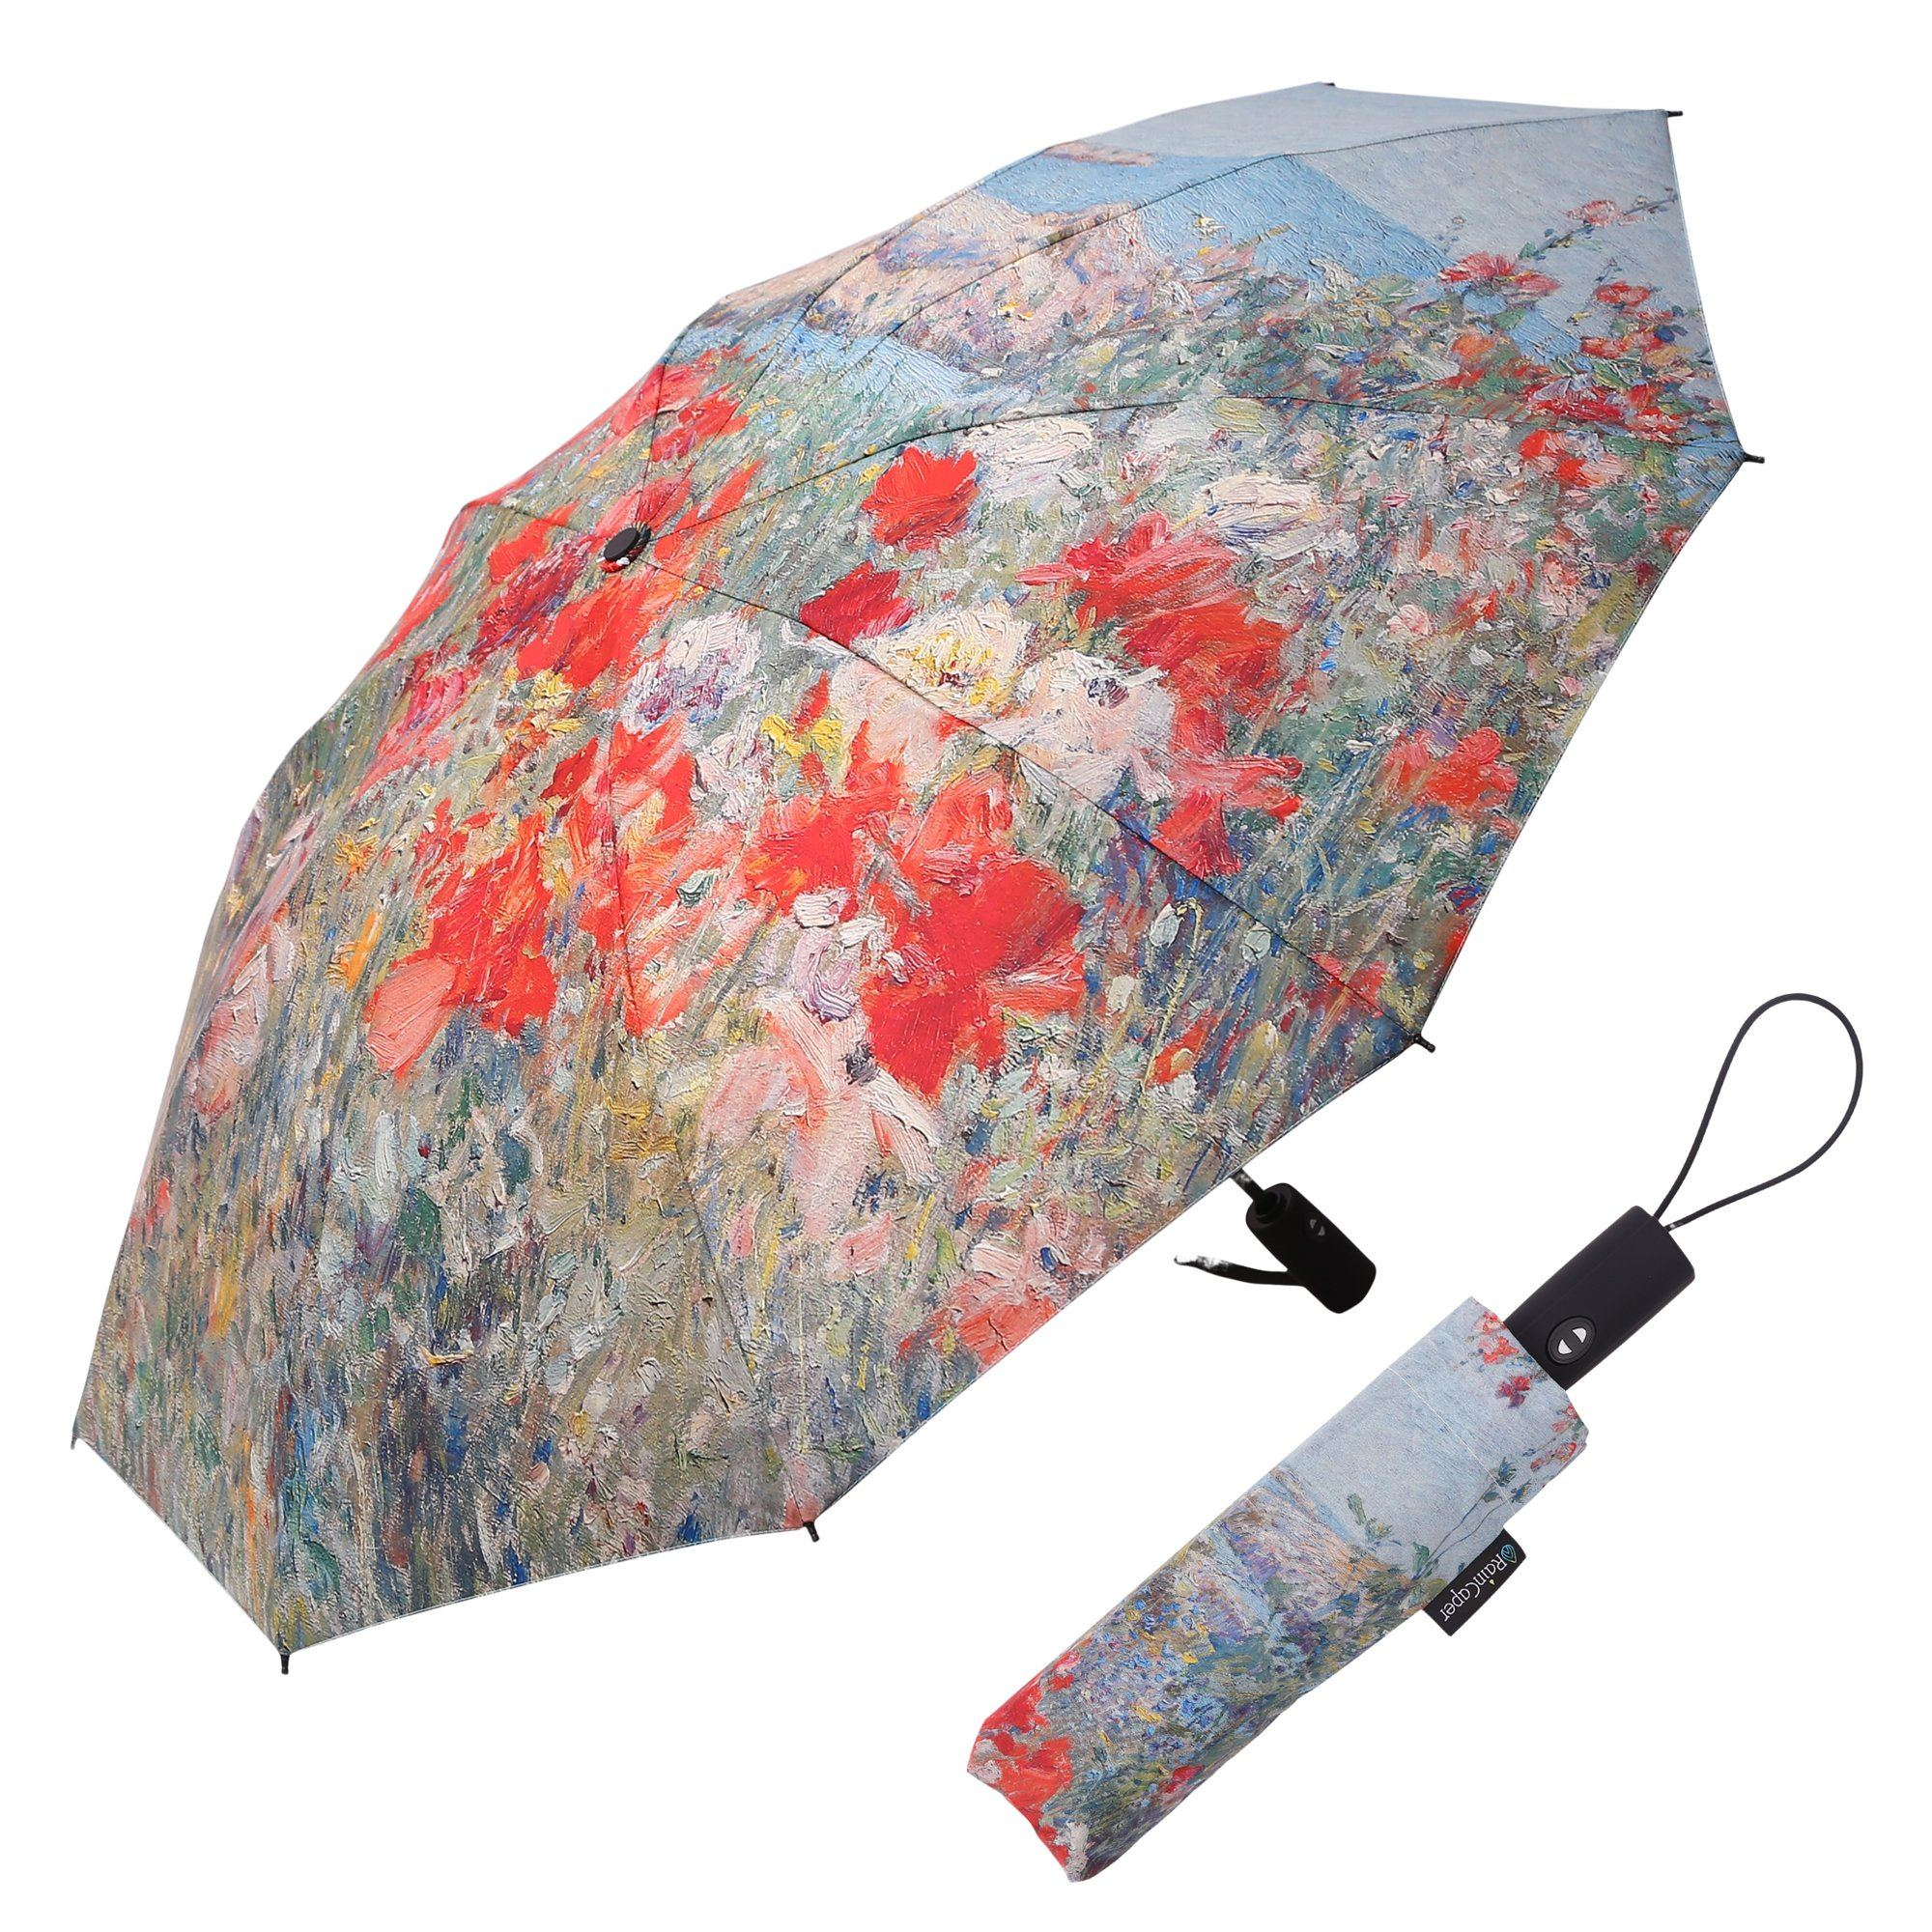 Image of a RainCaper Hassam Celia's Garden/Isles of Shoals folded traveling umbrella shown both open and closed